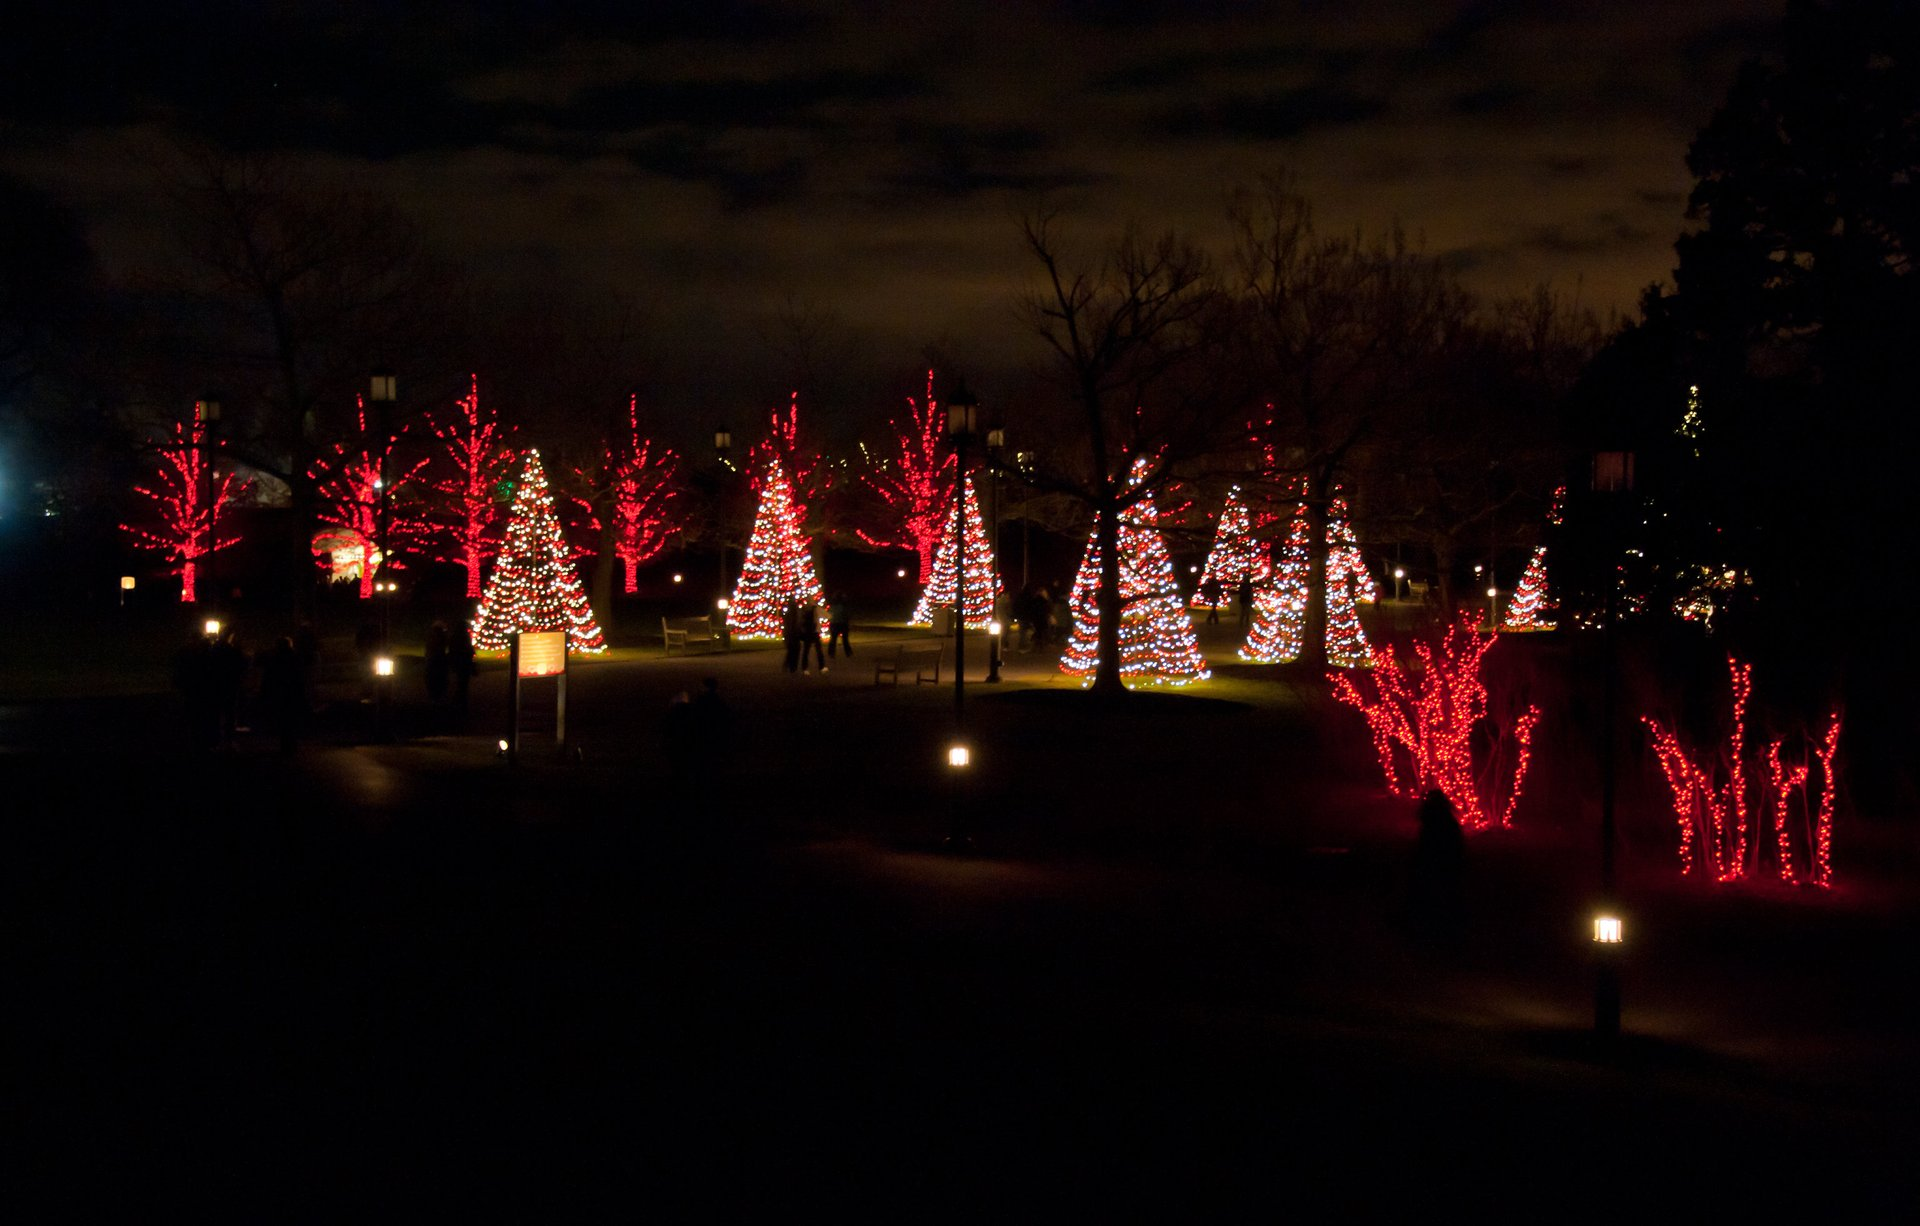 Longwood Gardens Christmas Display 2020